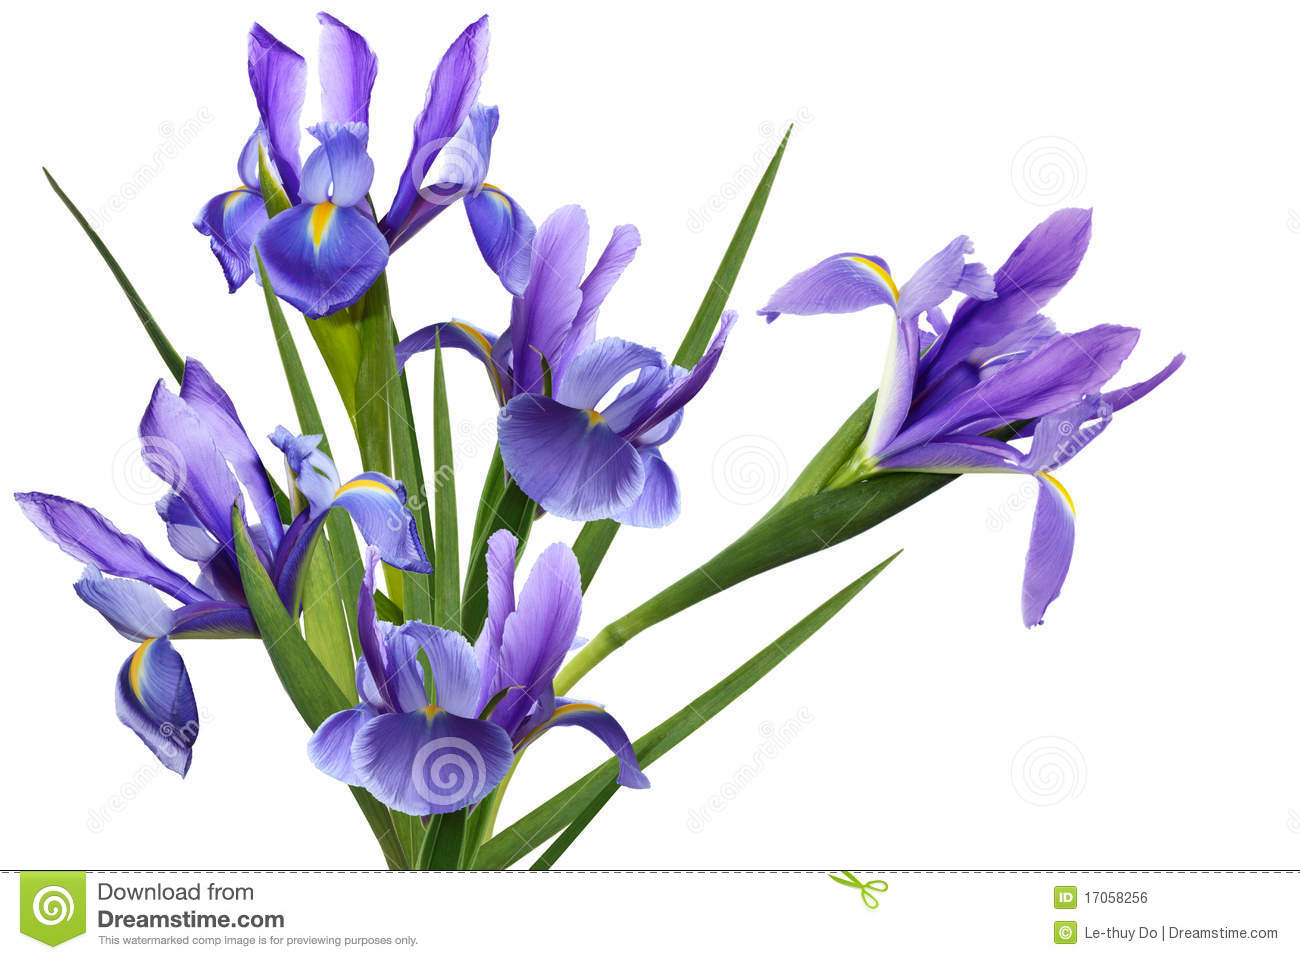 Iris images flowers savingourboysfo flower iris stock images image natural flower izmirmasajfo Choice Image